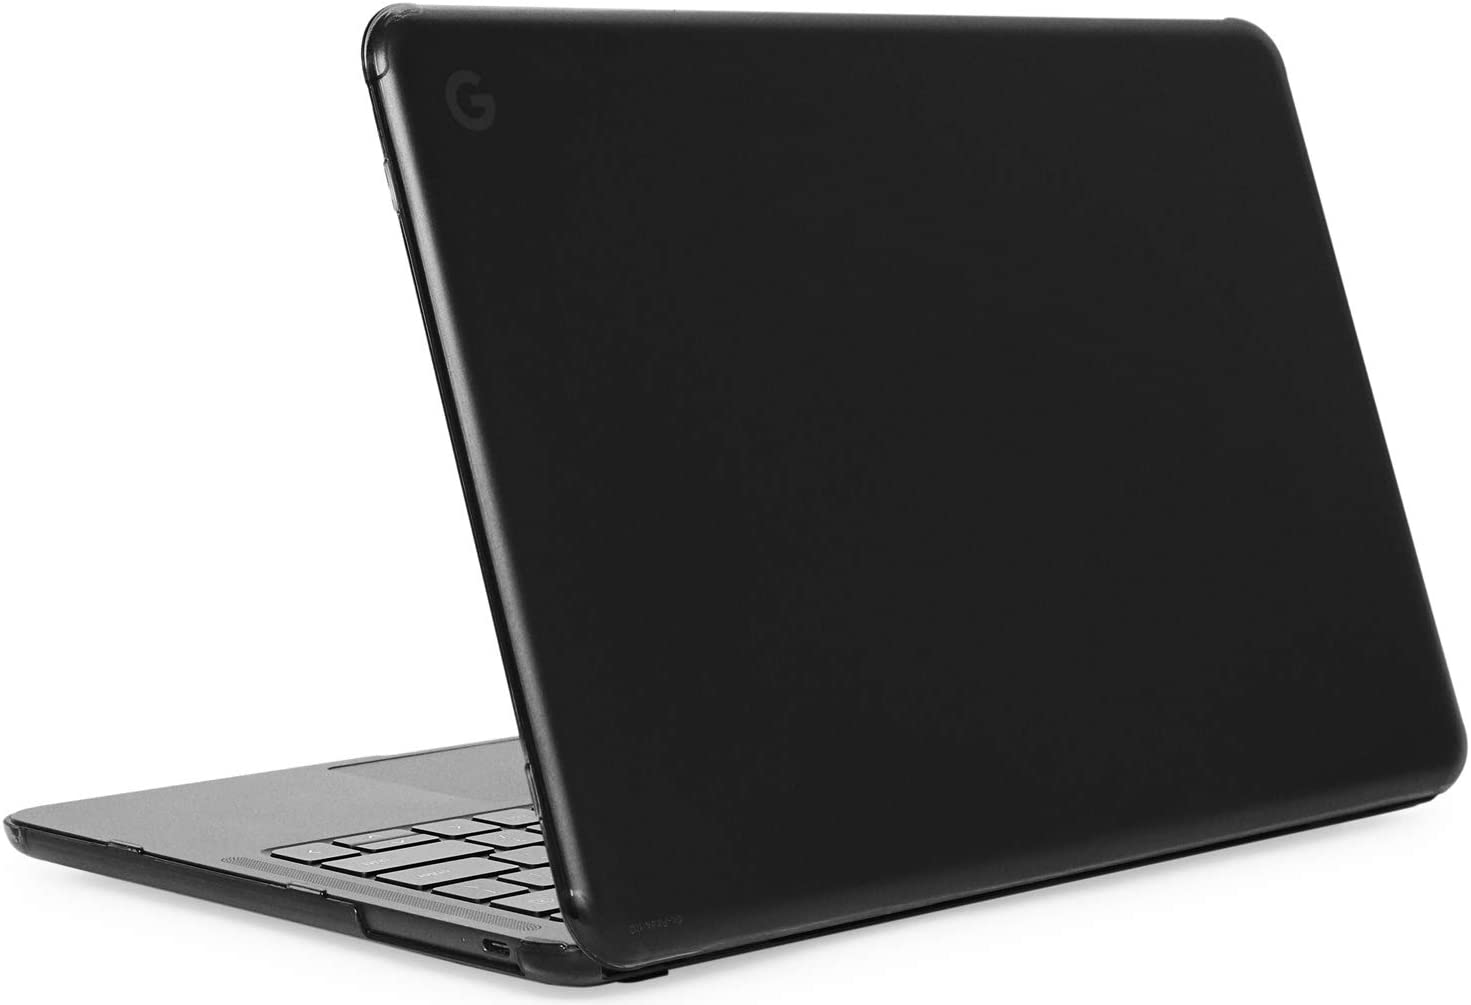 """mCover Hard Shell Case for Late-2019 13.3"""" Google Pixelbook Go Chromebook Laptop Computers (NOT Compatible Older Model Released Before 2019) laptops (PixelbookGo Black)"""